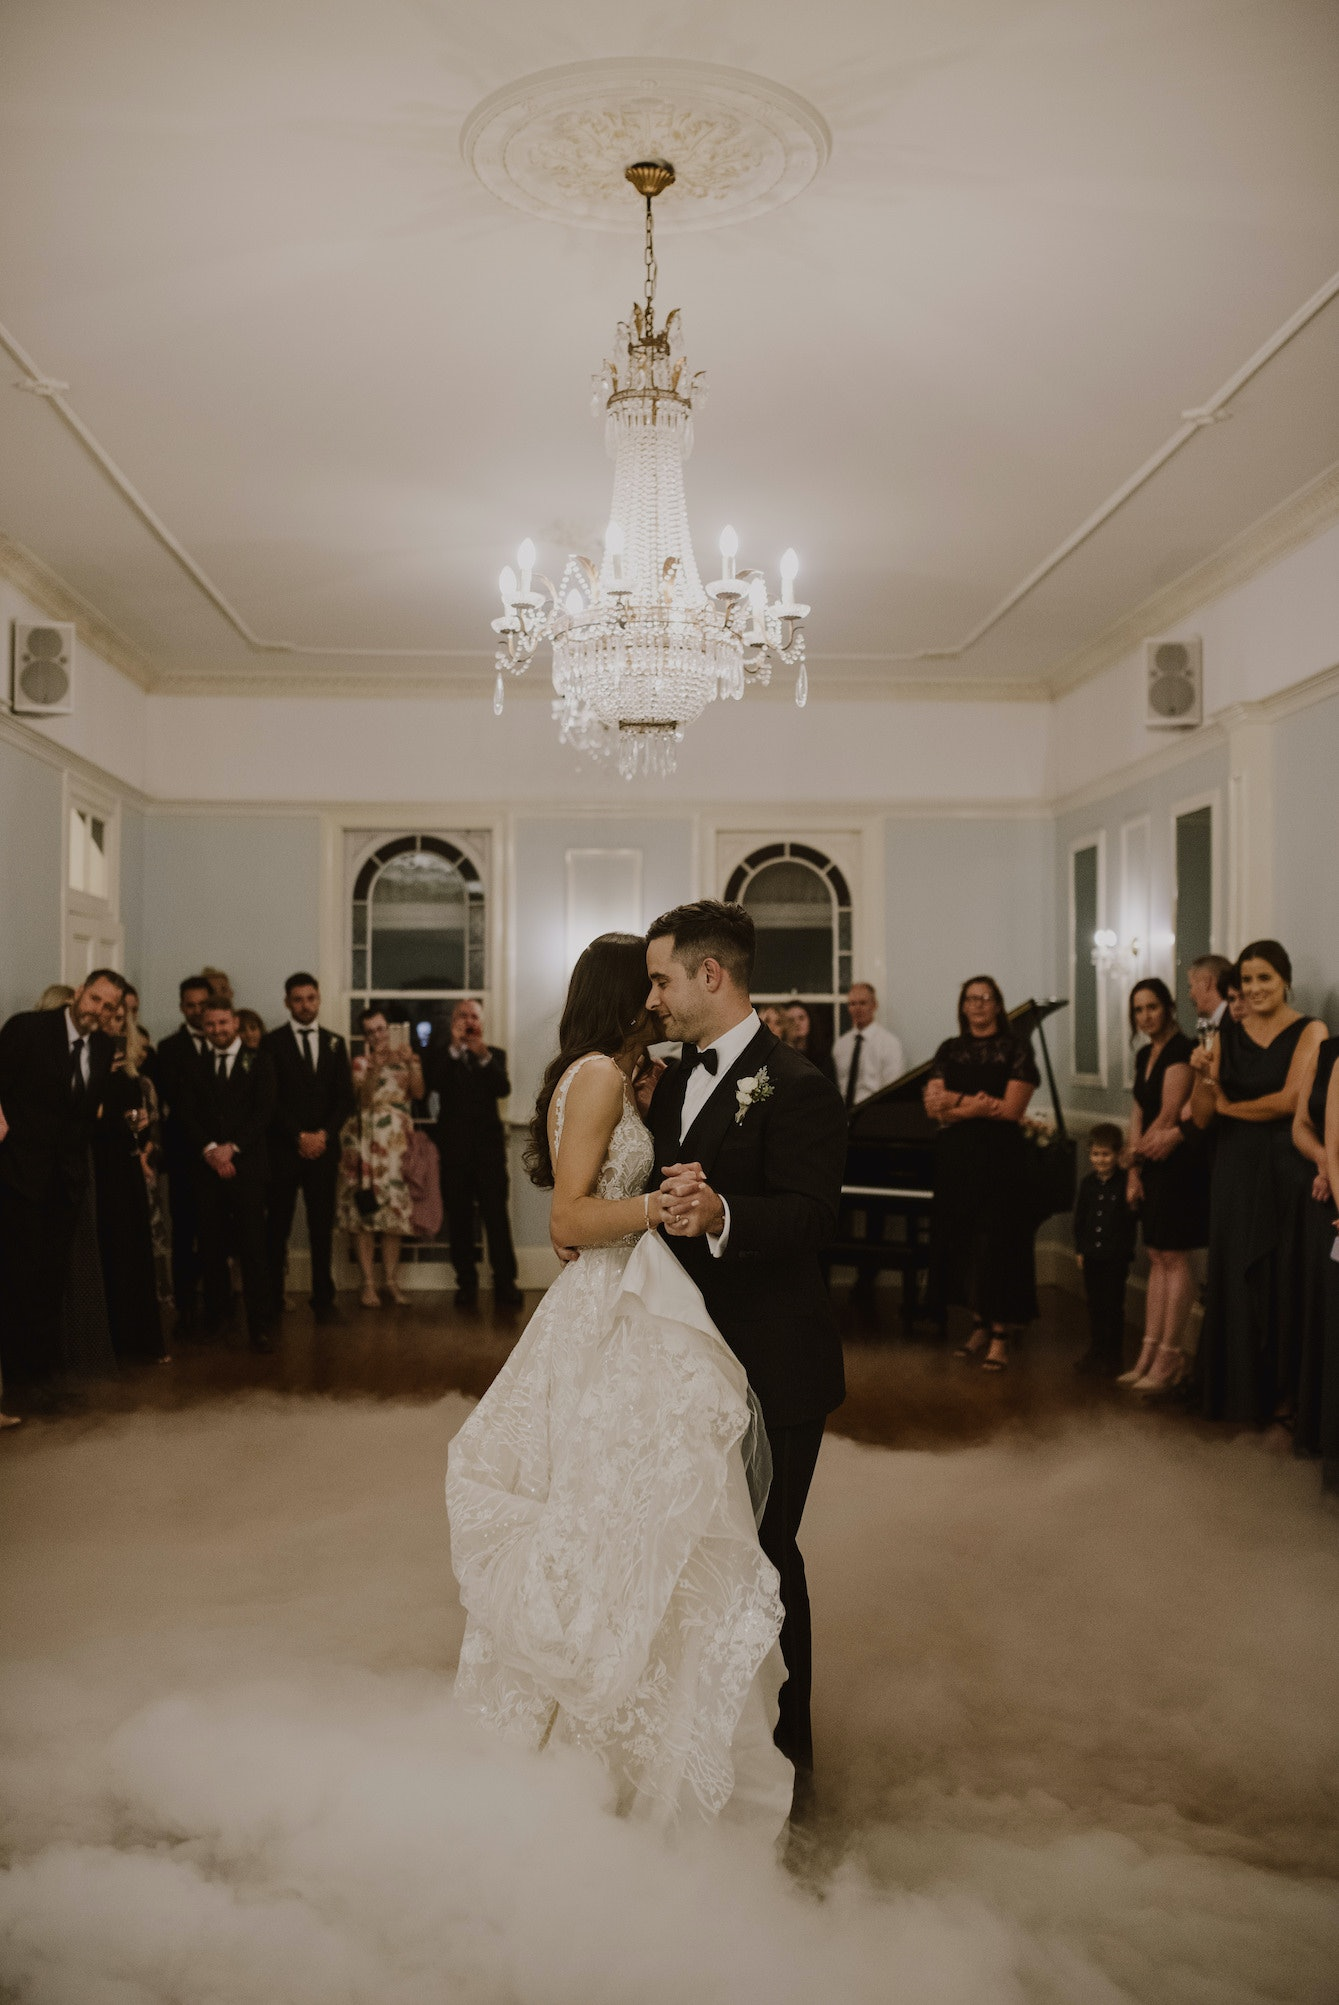 Bride and groom dancing in ballroom with smoke machine